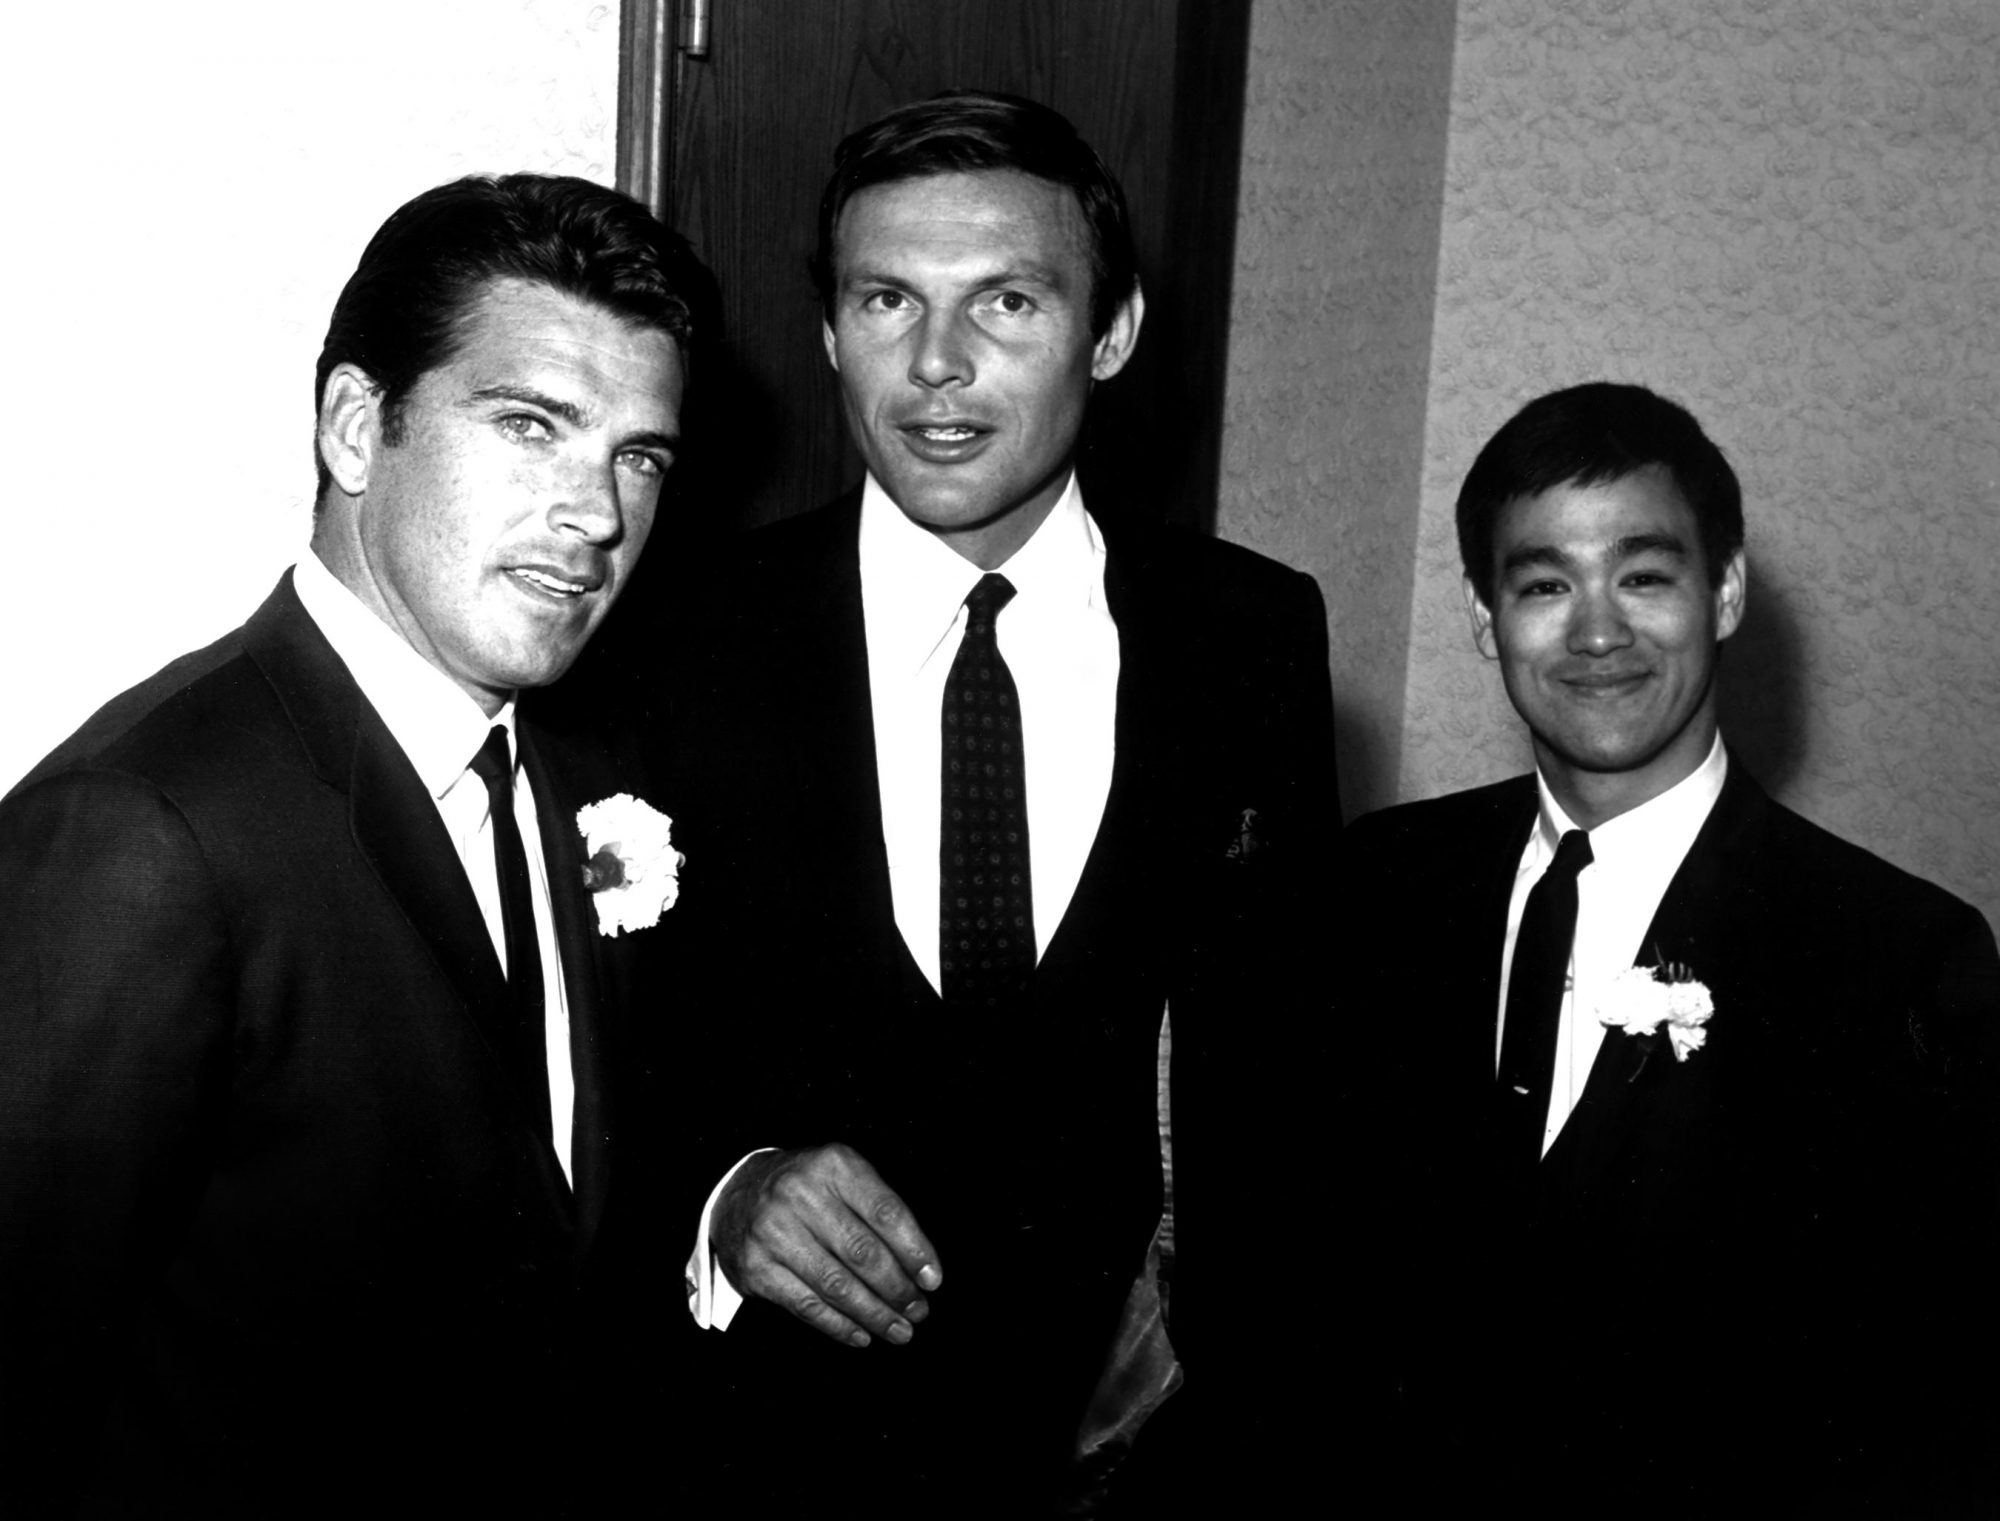 Van Williams, Adam West and Bruce Lee during a break from the BATMAN and GREEN HORNET series, c. 196